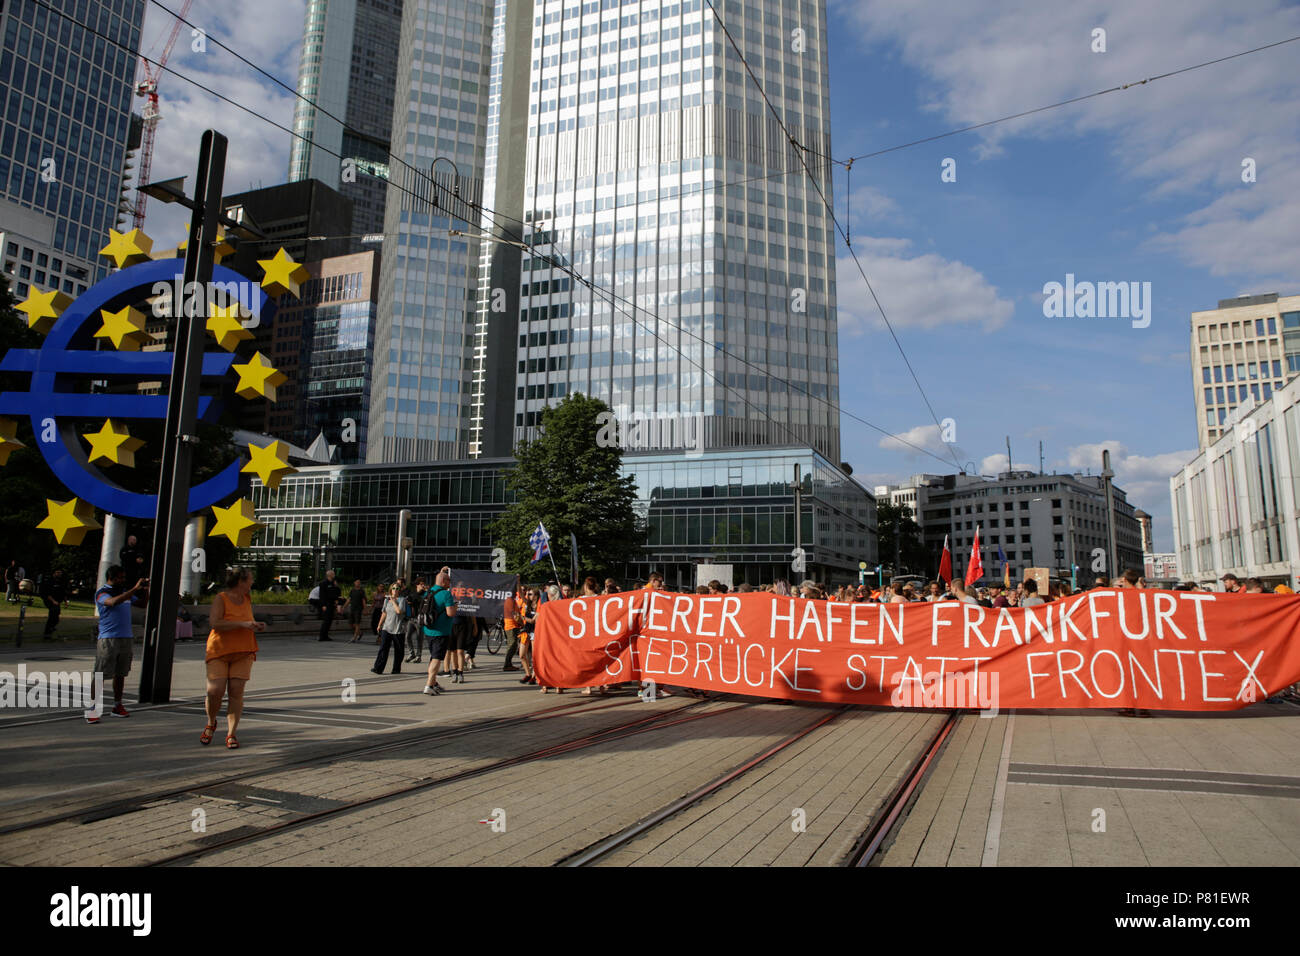 Frankfurt, Germany. 07th July, 2018. Protesters stand with a banner that reads 'Safe haven Frankfurt - Seebrucke (Sea bridge) instead of FRONTEX' in front of the Euro sign outside the former seat of the ECB. Around 800 protesters marched through Frankfurt to protest against the politics of the German government and the EU of closed borders and the prevention of sea rescue operations of NGOs, by grounding their ships in Malta, that causes refugees to drown in the Mediterranean. They called for the Mayor of Frankfurt to declare Frankfurt a safe haven city for refugees from the Mediterranean. The Stock Photo